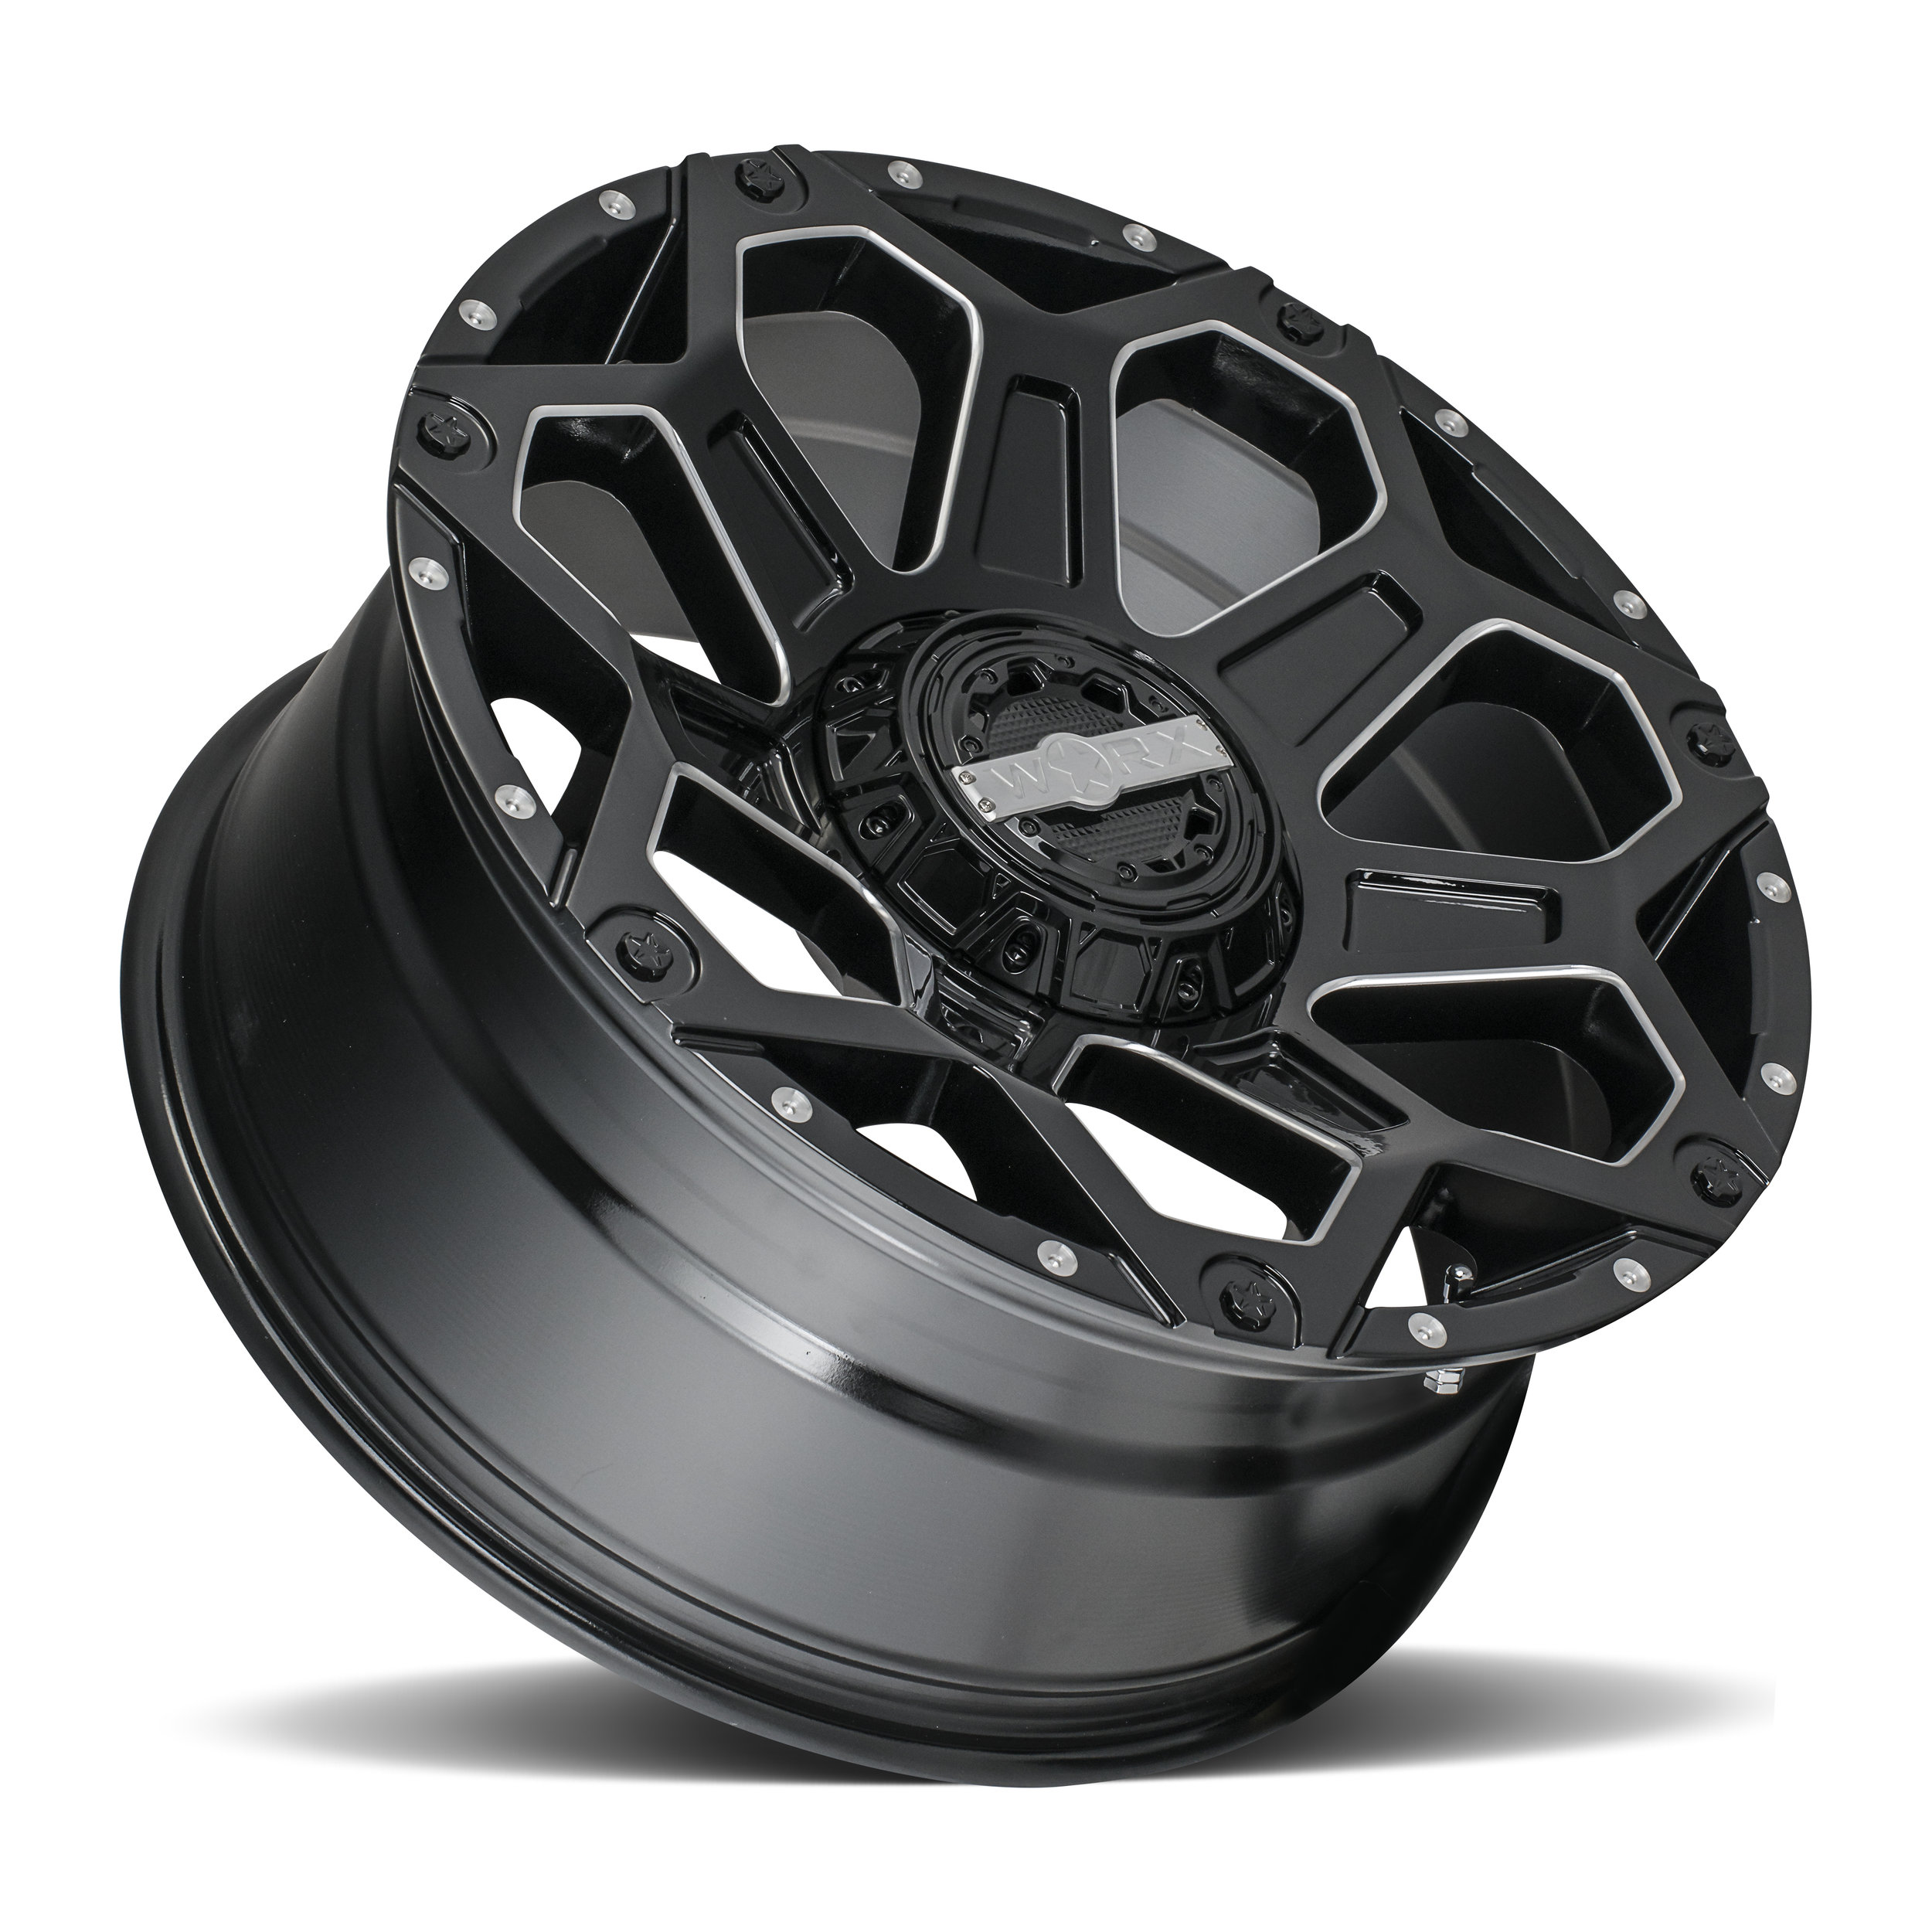 wrx_812_gloss_black_mill_20x9_5-6lug_lay.jpg